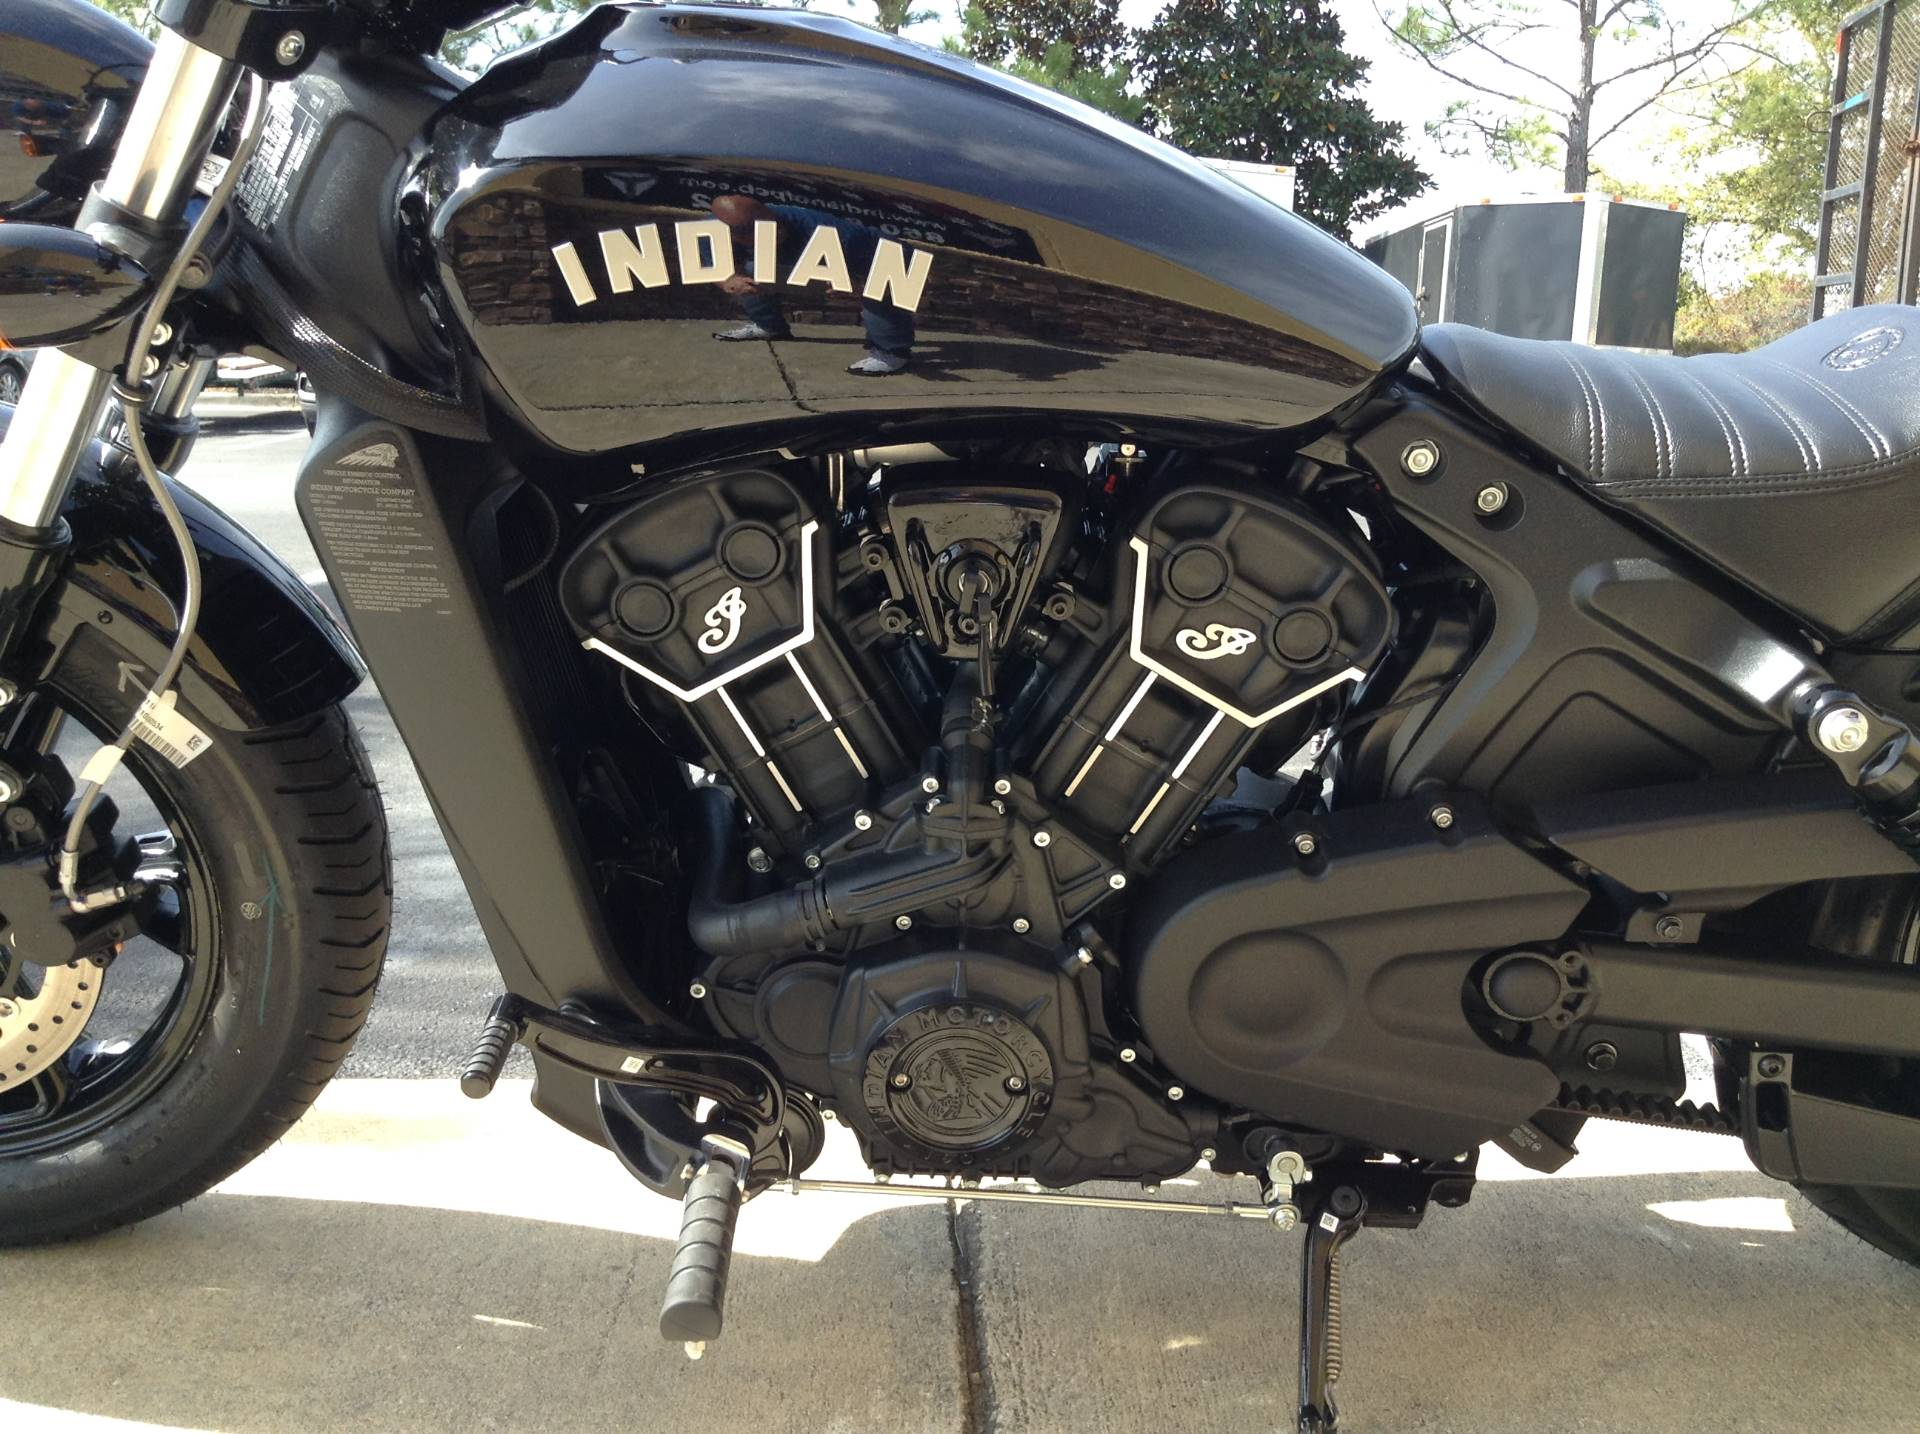 2020 Indian SCOUT BOBBER 60 in Panama City Beach, Florida - Photo 10